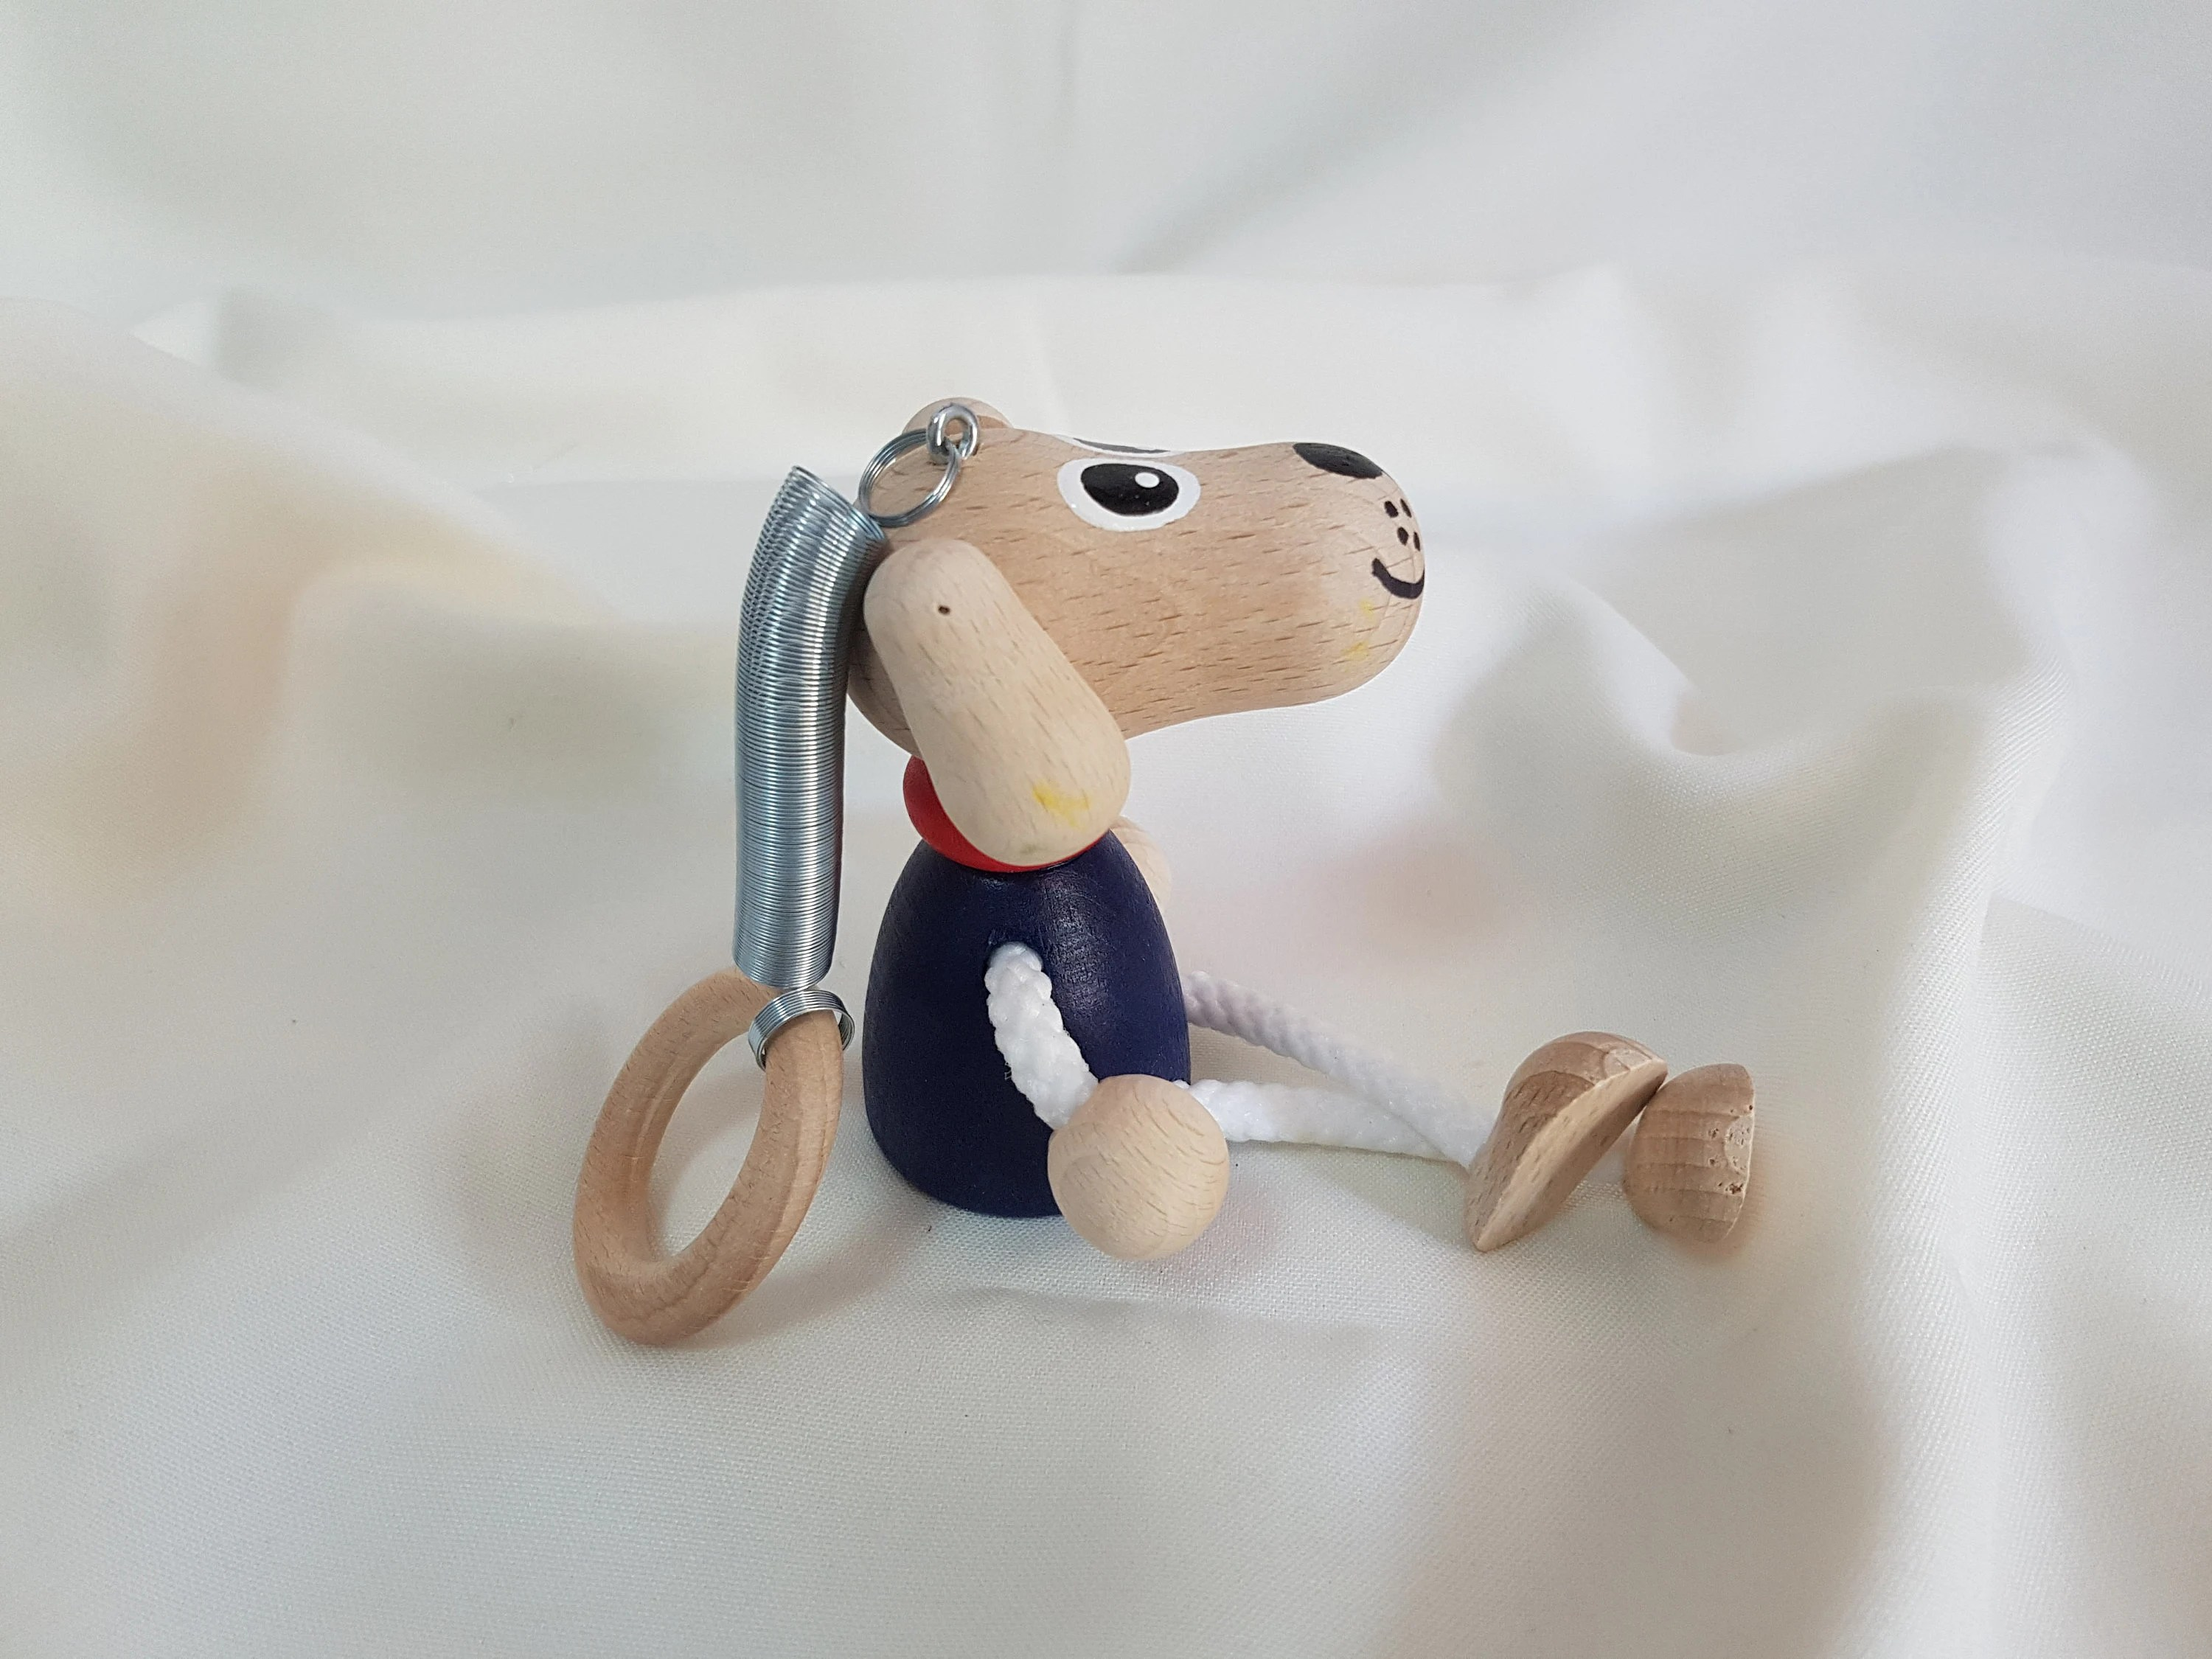 Dog Personalizable Kids Toys Wooden Dog Doll on Coil image 2